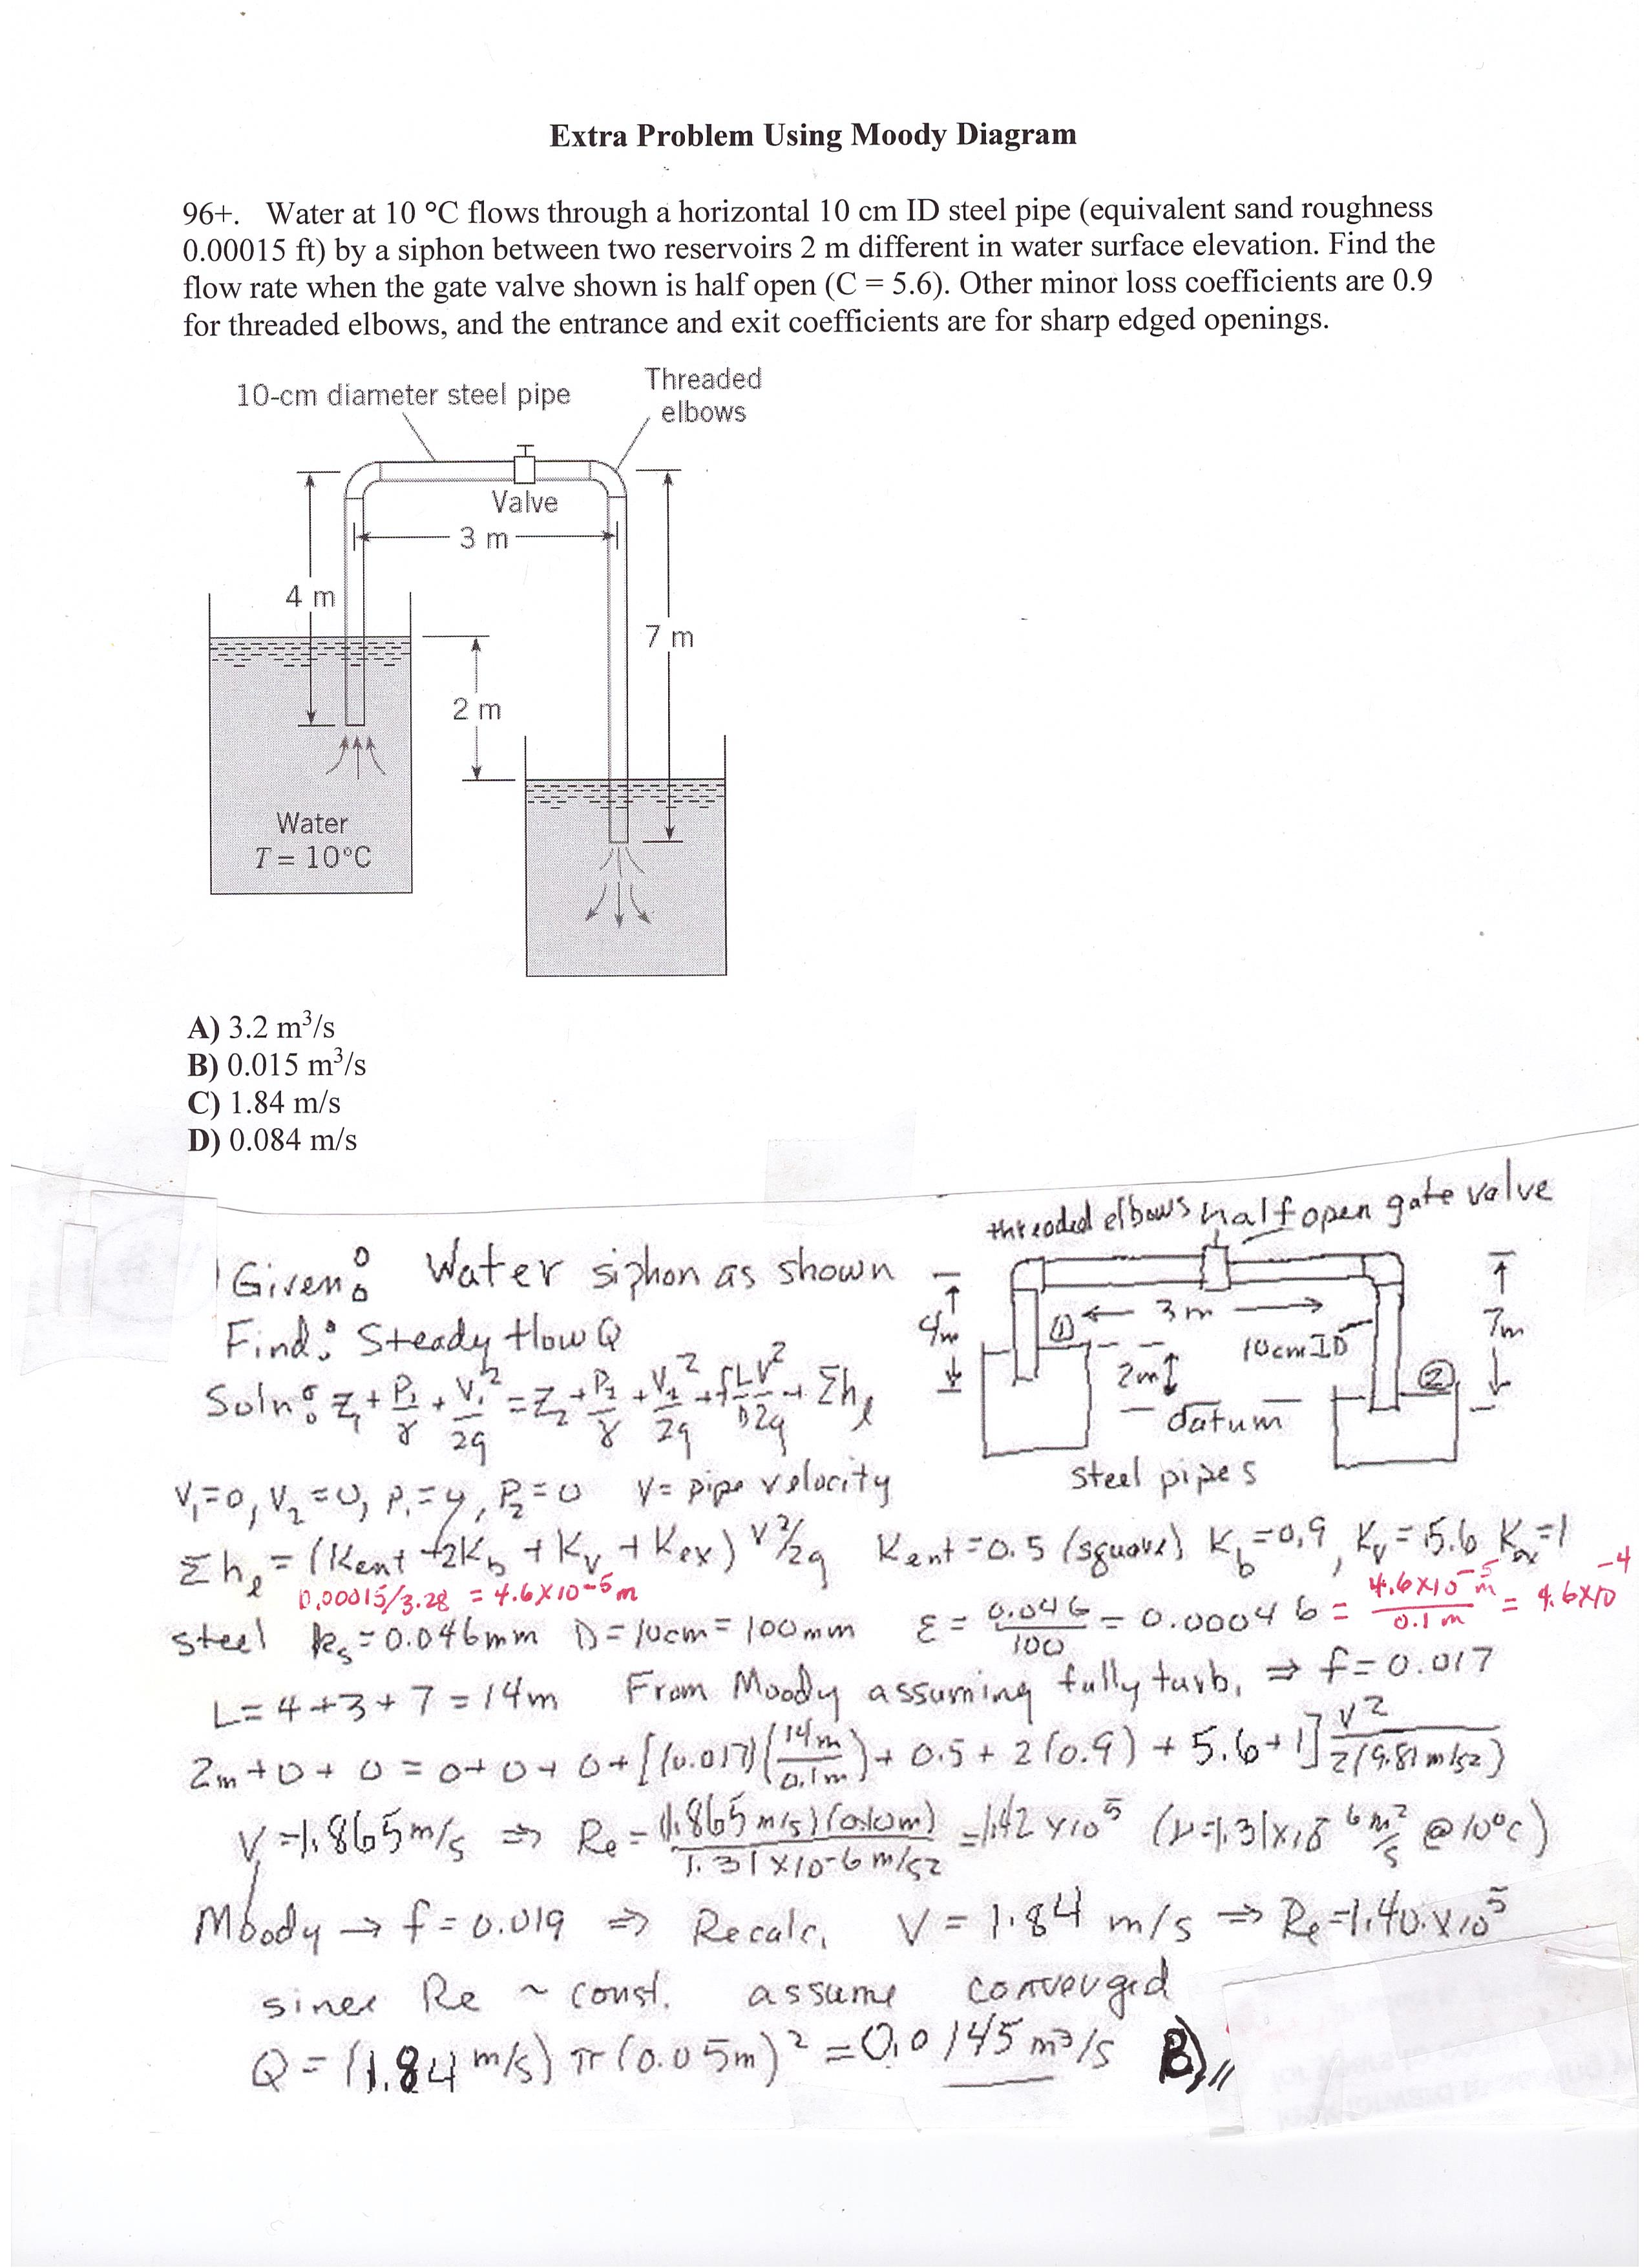 Fe math review problem solutions view solution to moody diagram problem ccuart Choice Image